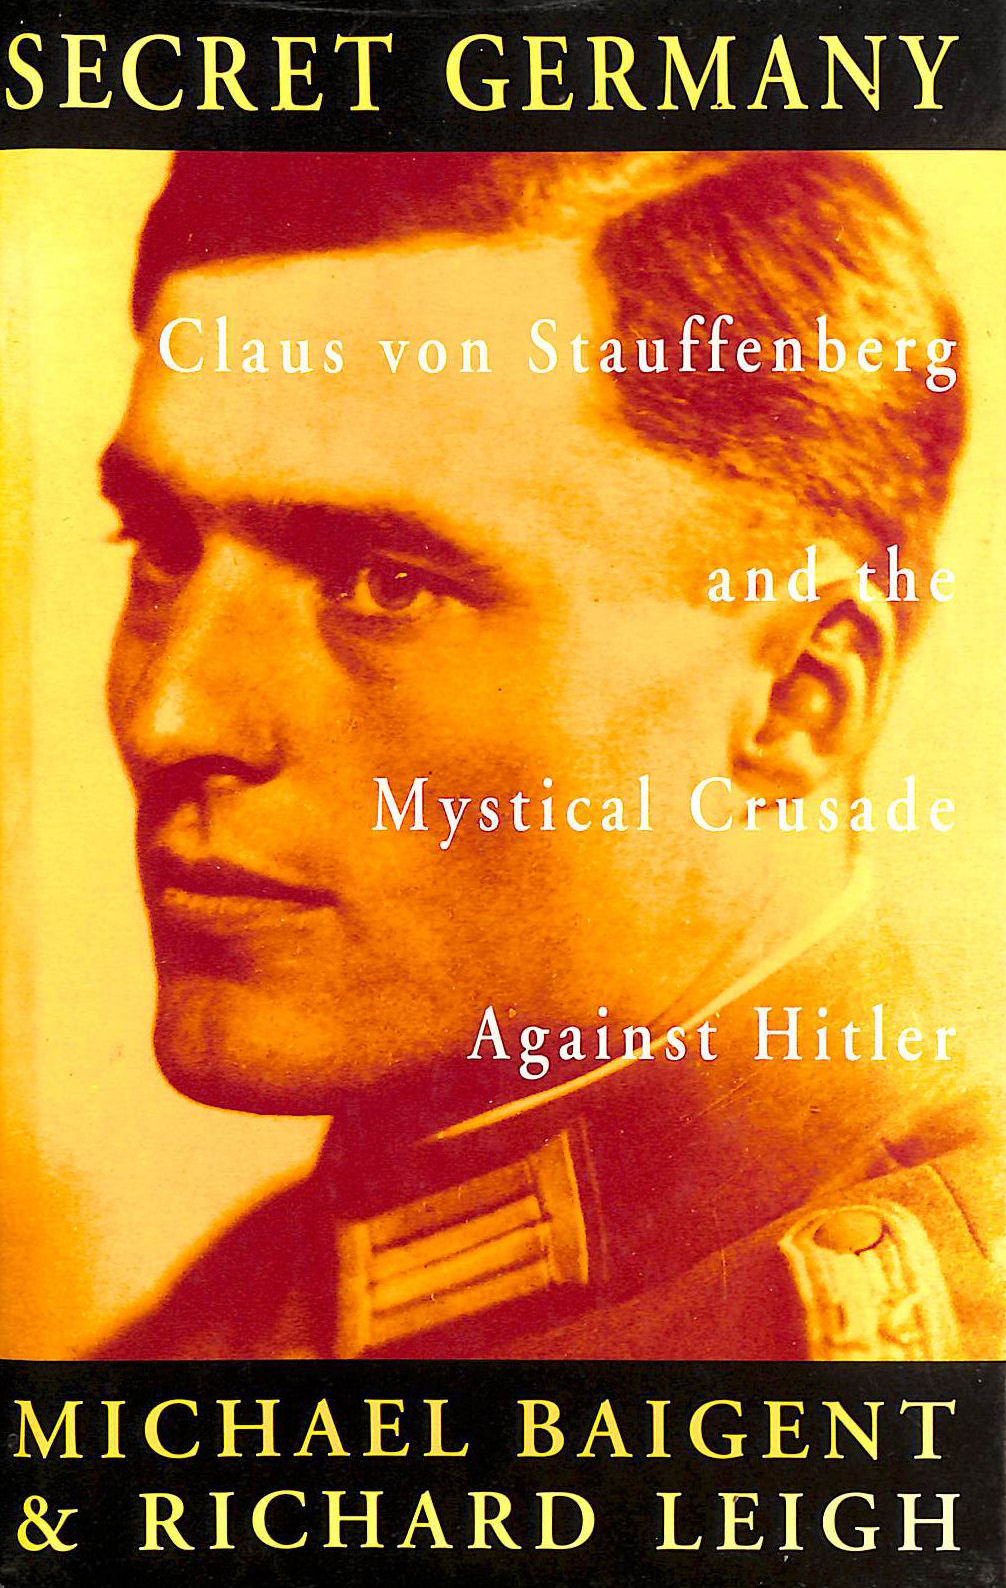 Image for Secret Germany: Claus Von Stauffenberg and the Mystical Crusade Against Hitler